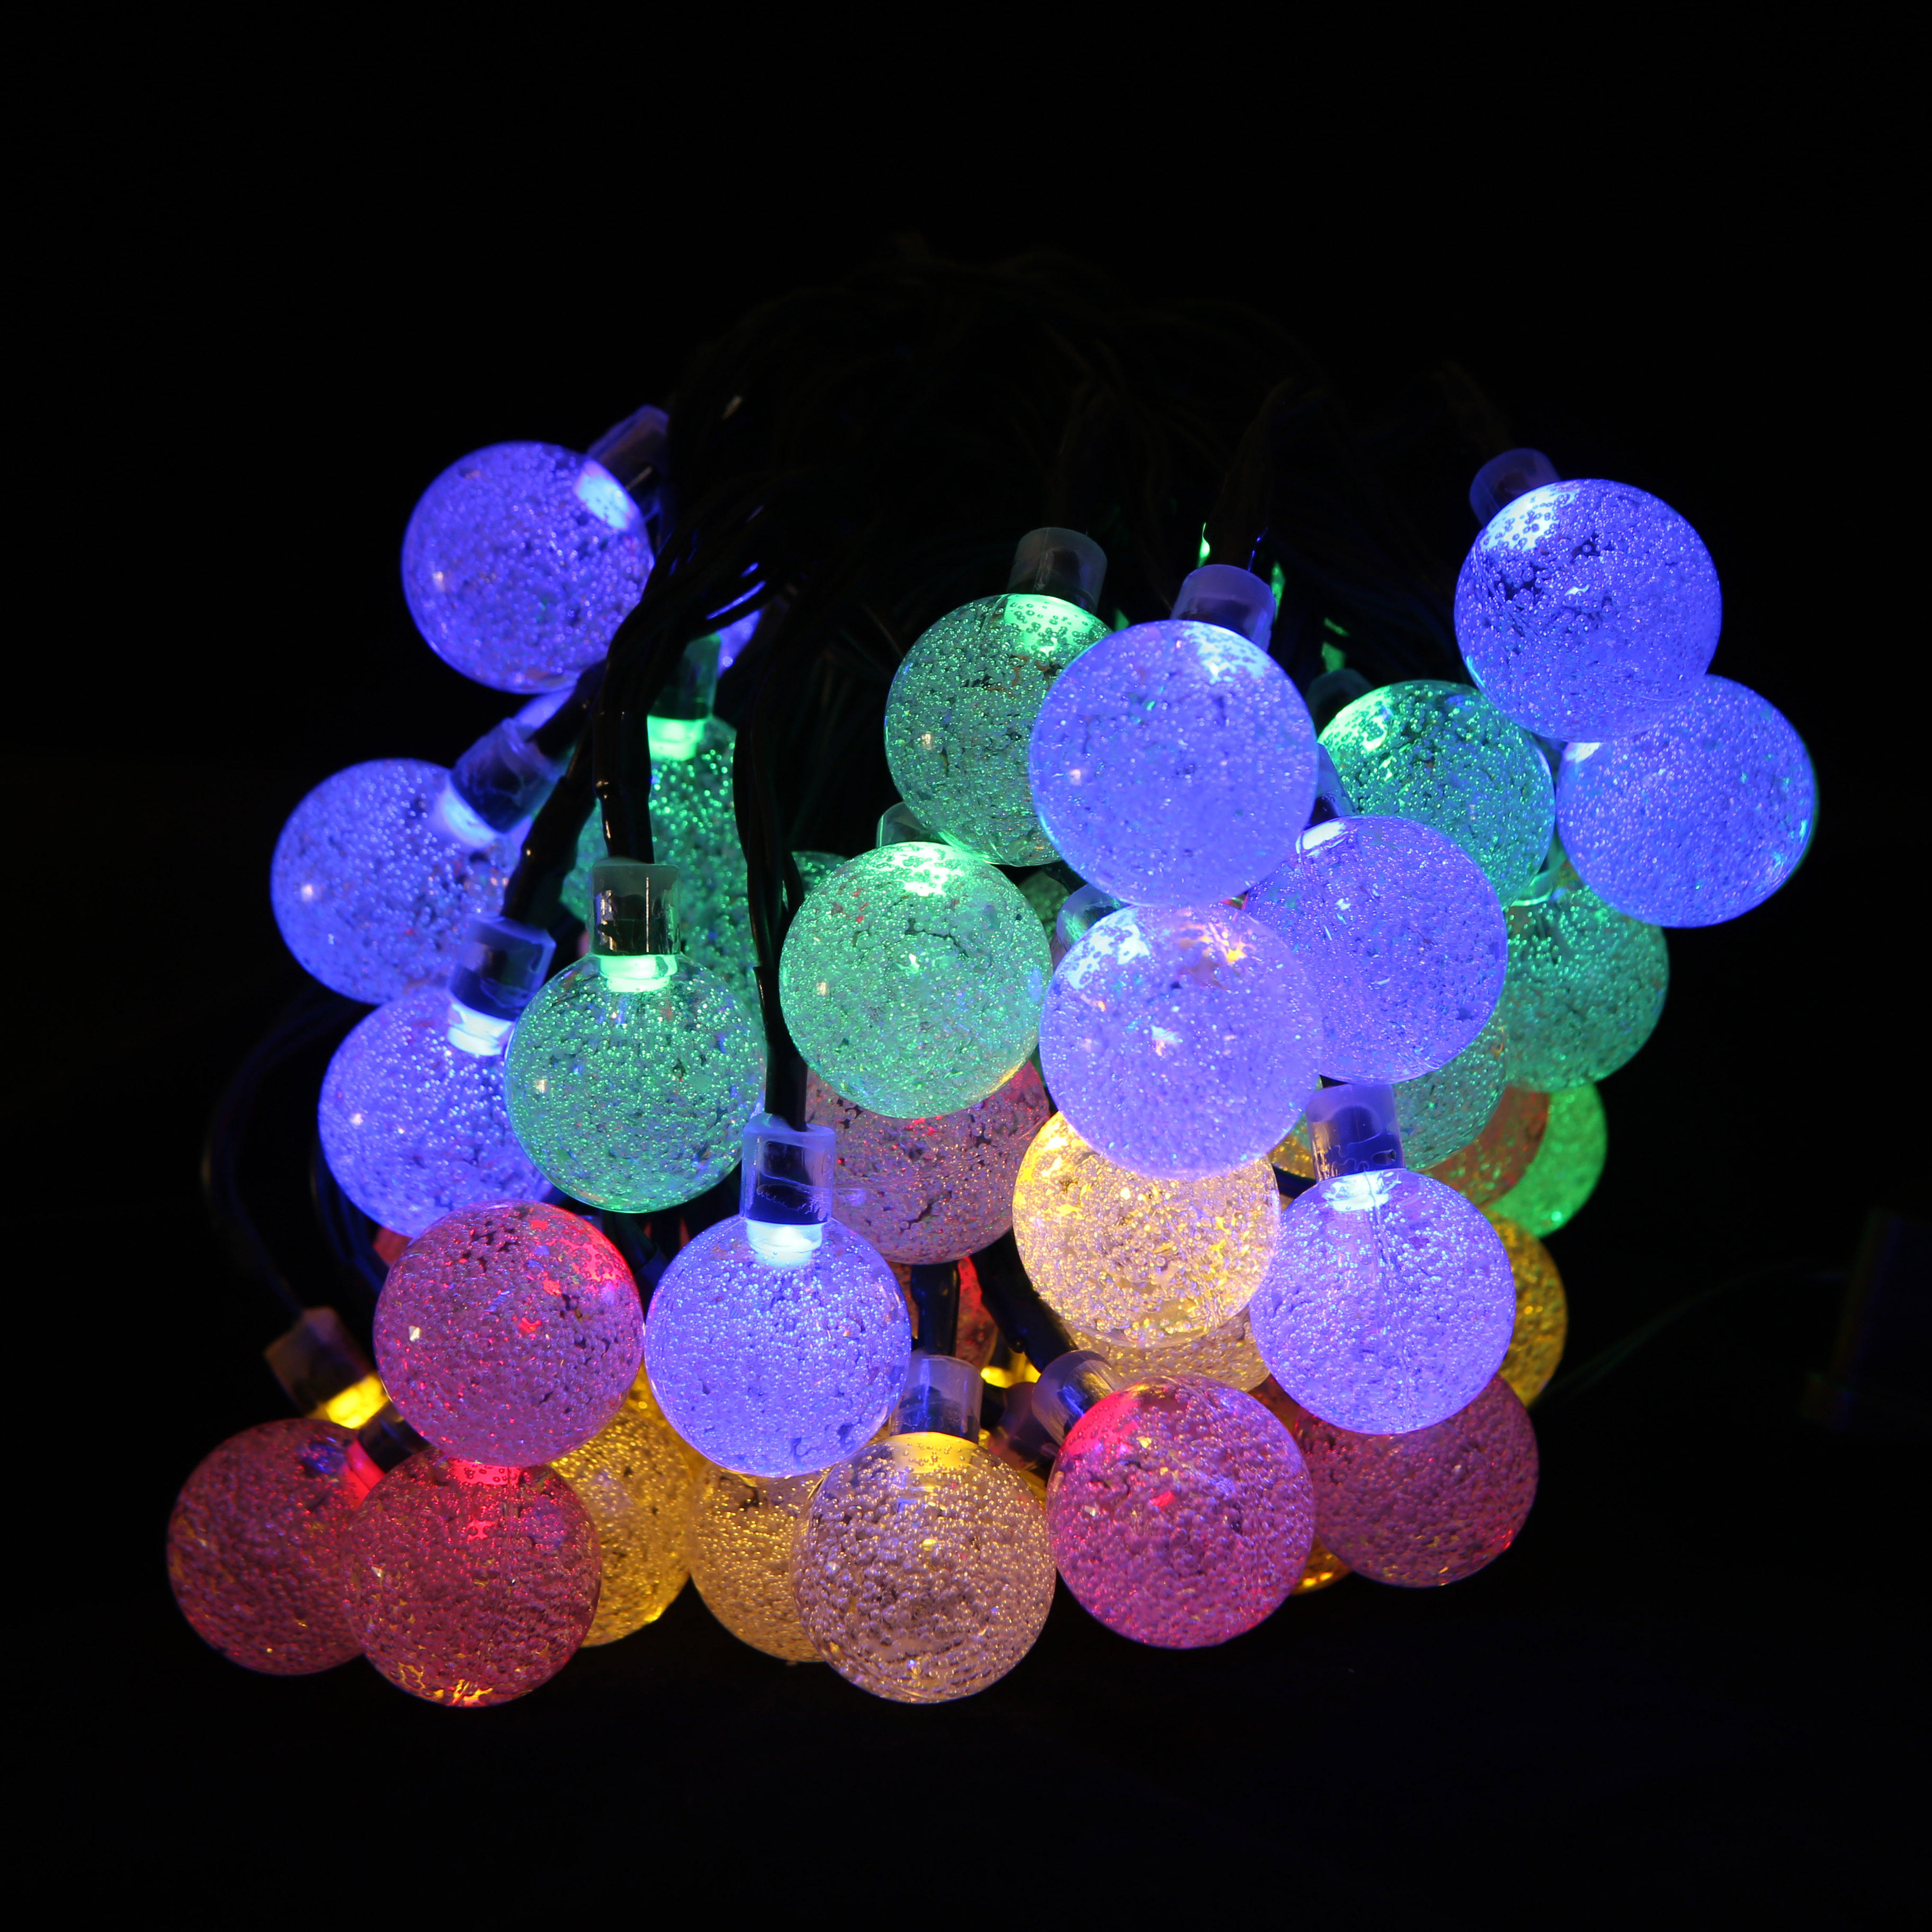 Christmas Solar String Light 30 LED Fairy String Bubble Crystal Ball Lights Decorative for Garland Garden Holiday